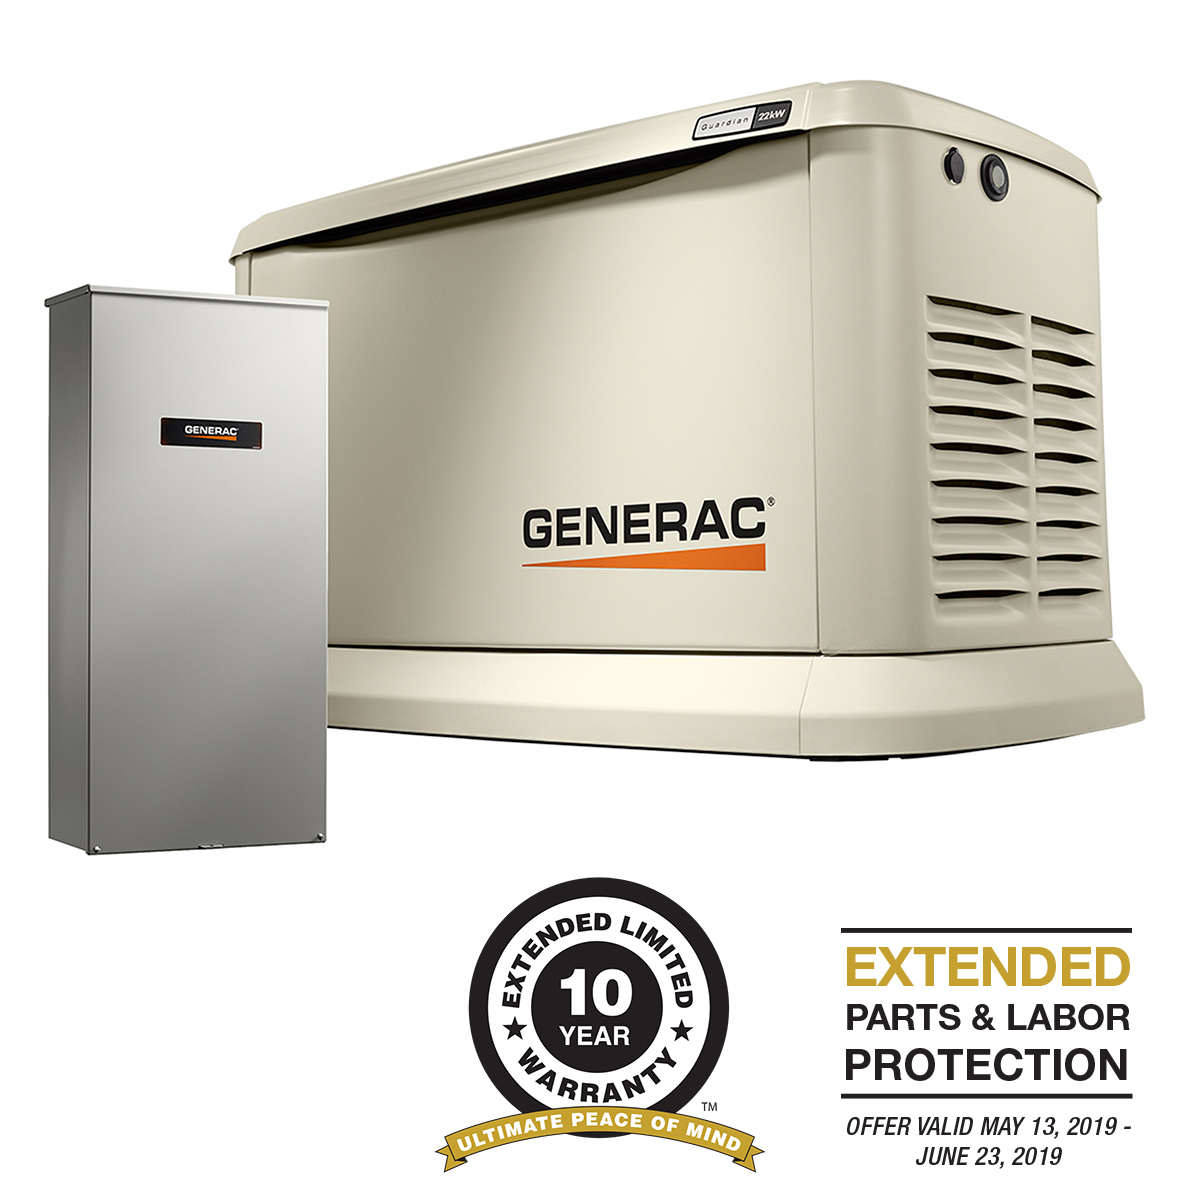 Generac 70432- 22-19 5 kW Air-Cooled Standby 200 SE Generator with Aluminum  Enclosure